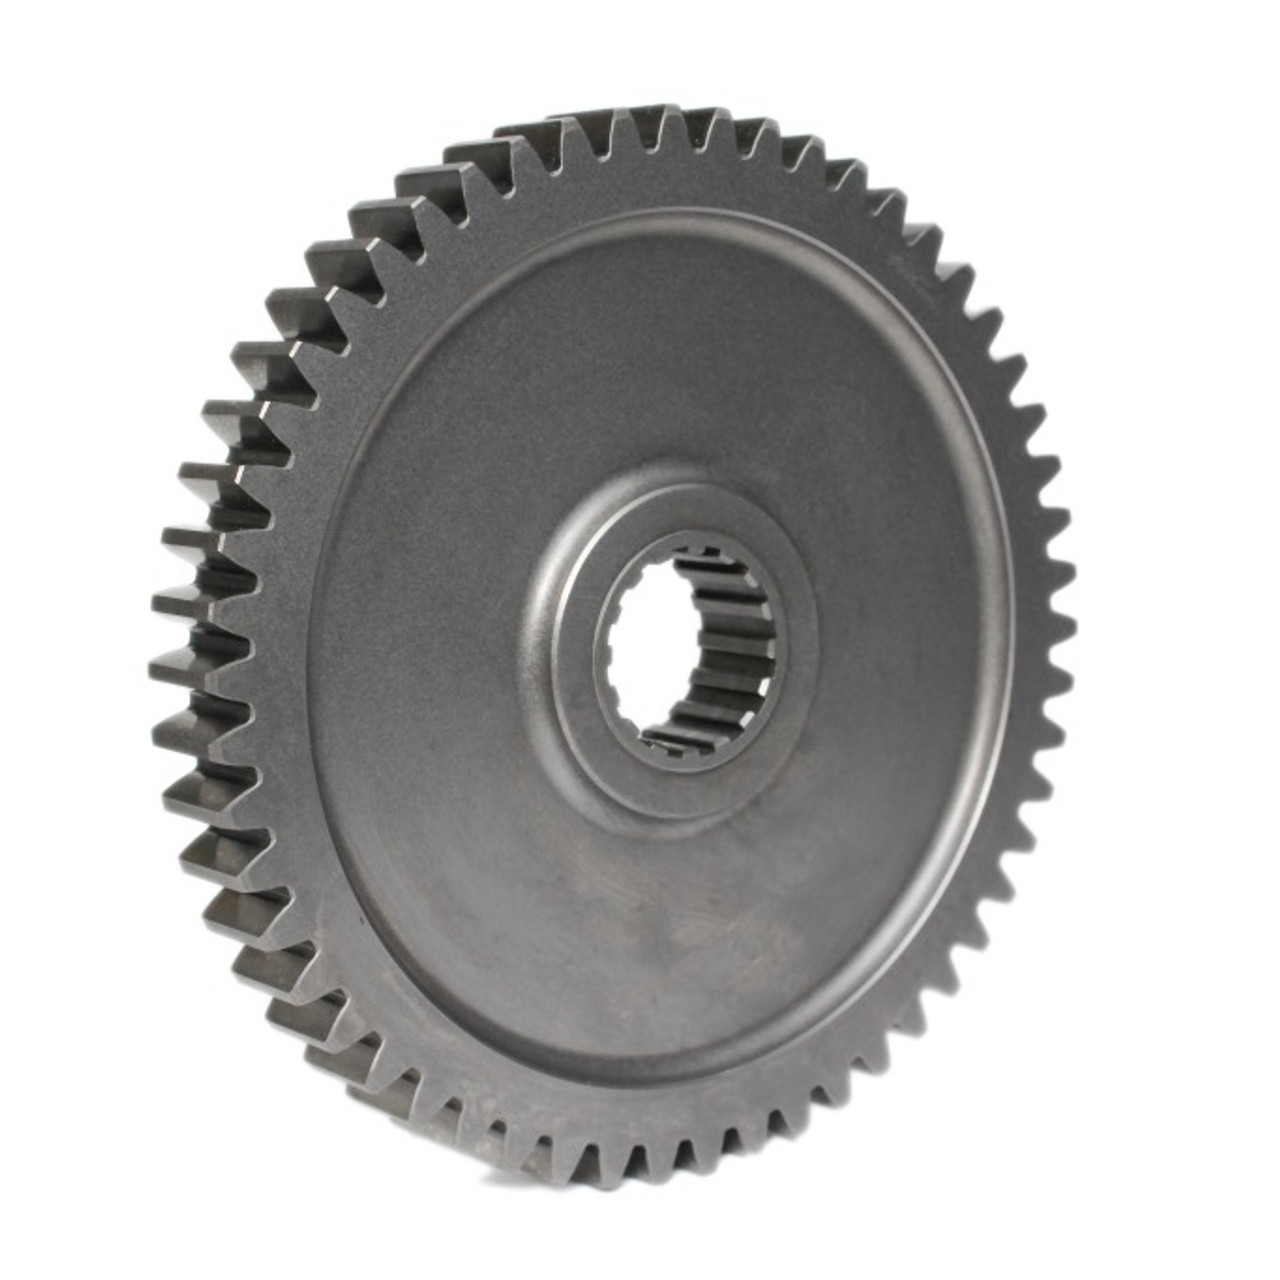 54 tooth gearbox gear